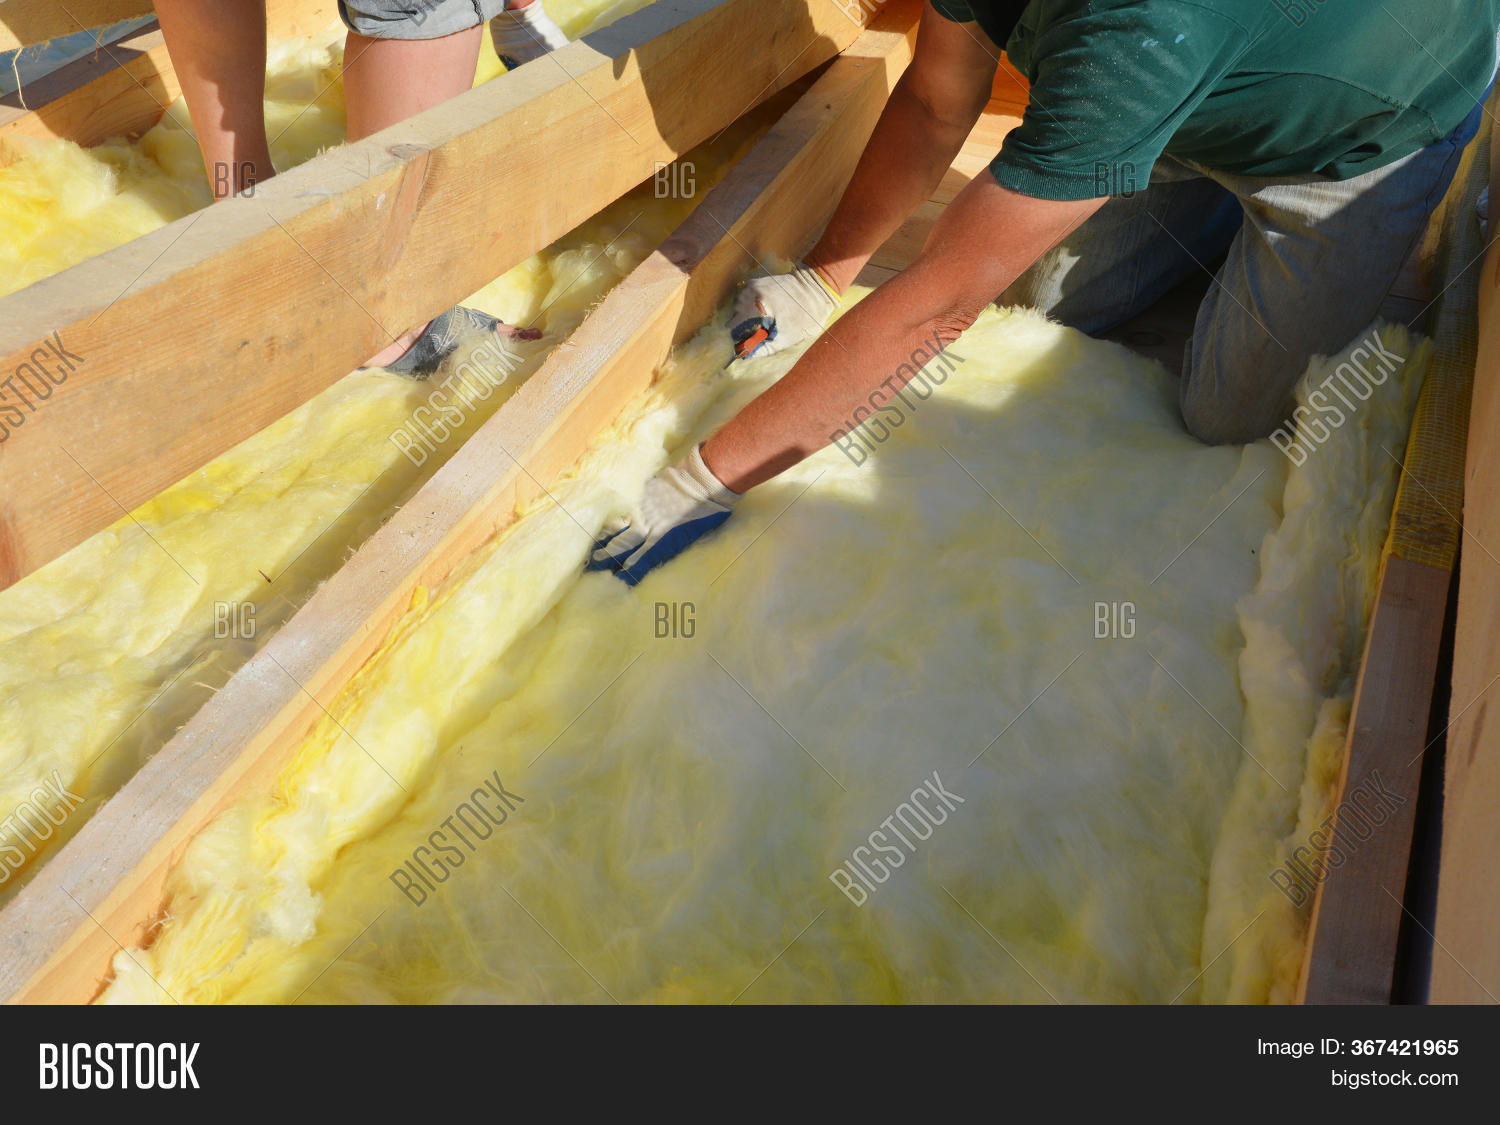 Roofing Construction Image Photo Free Trial Bigstock